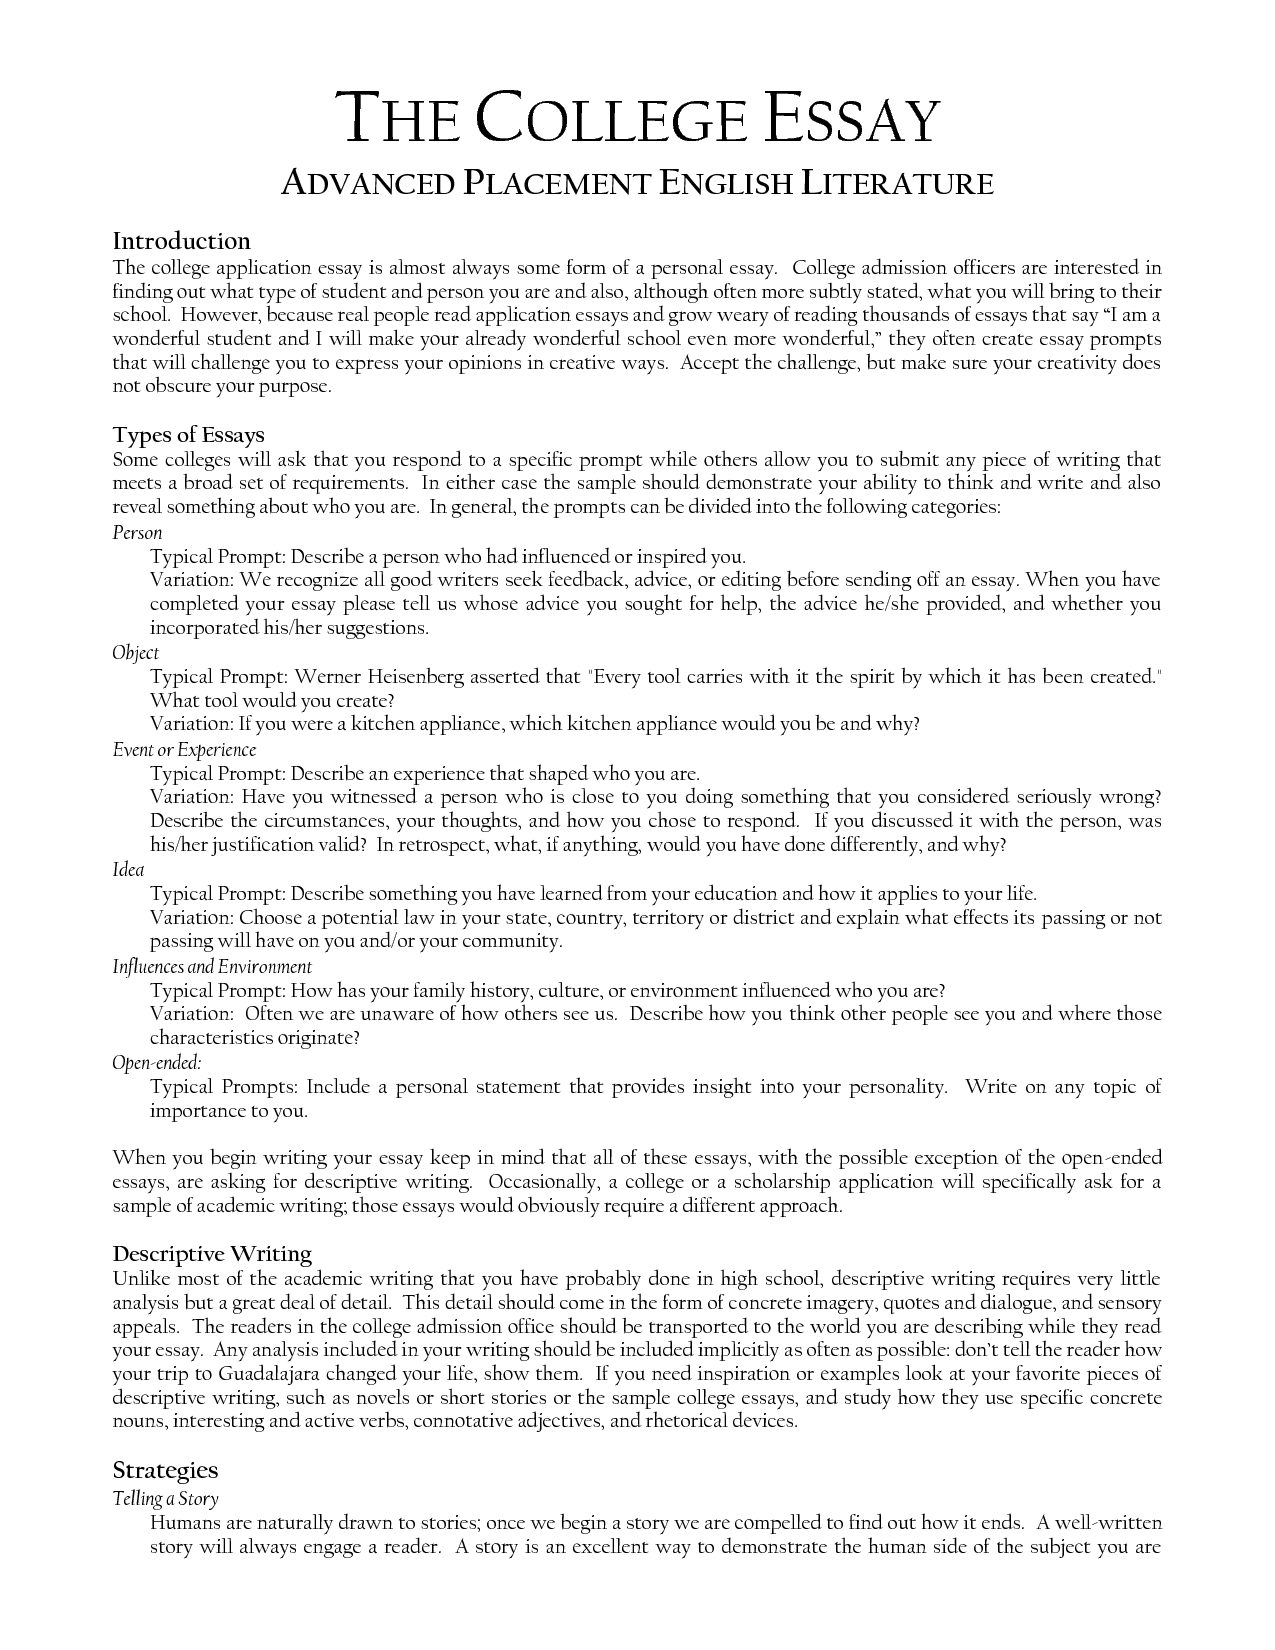 Sample resume essay writing test sample